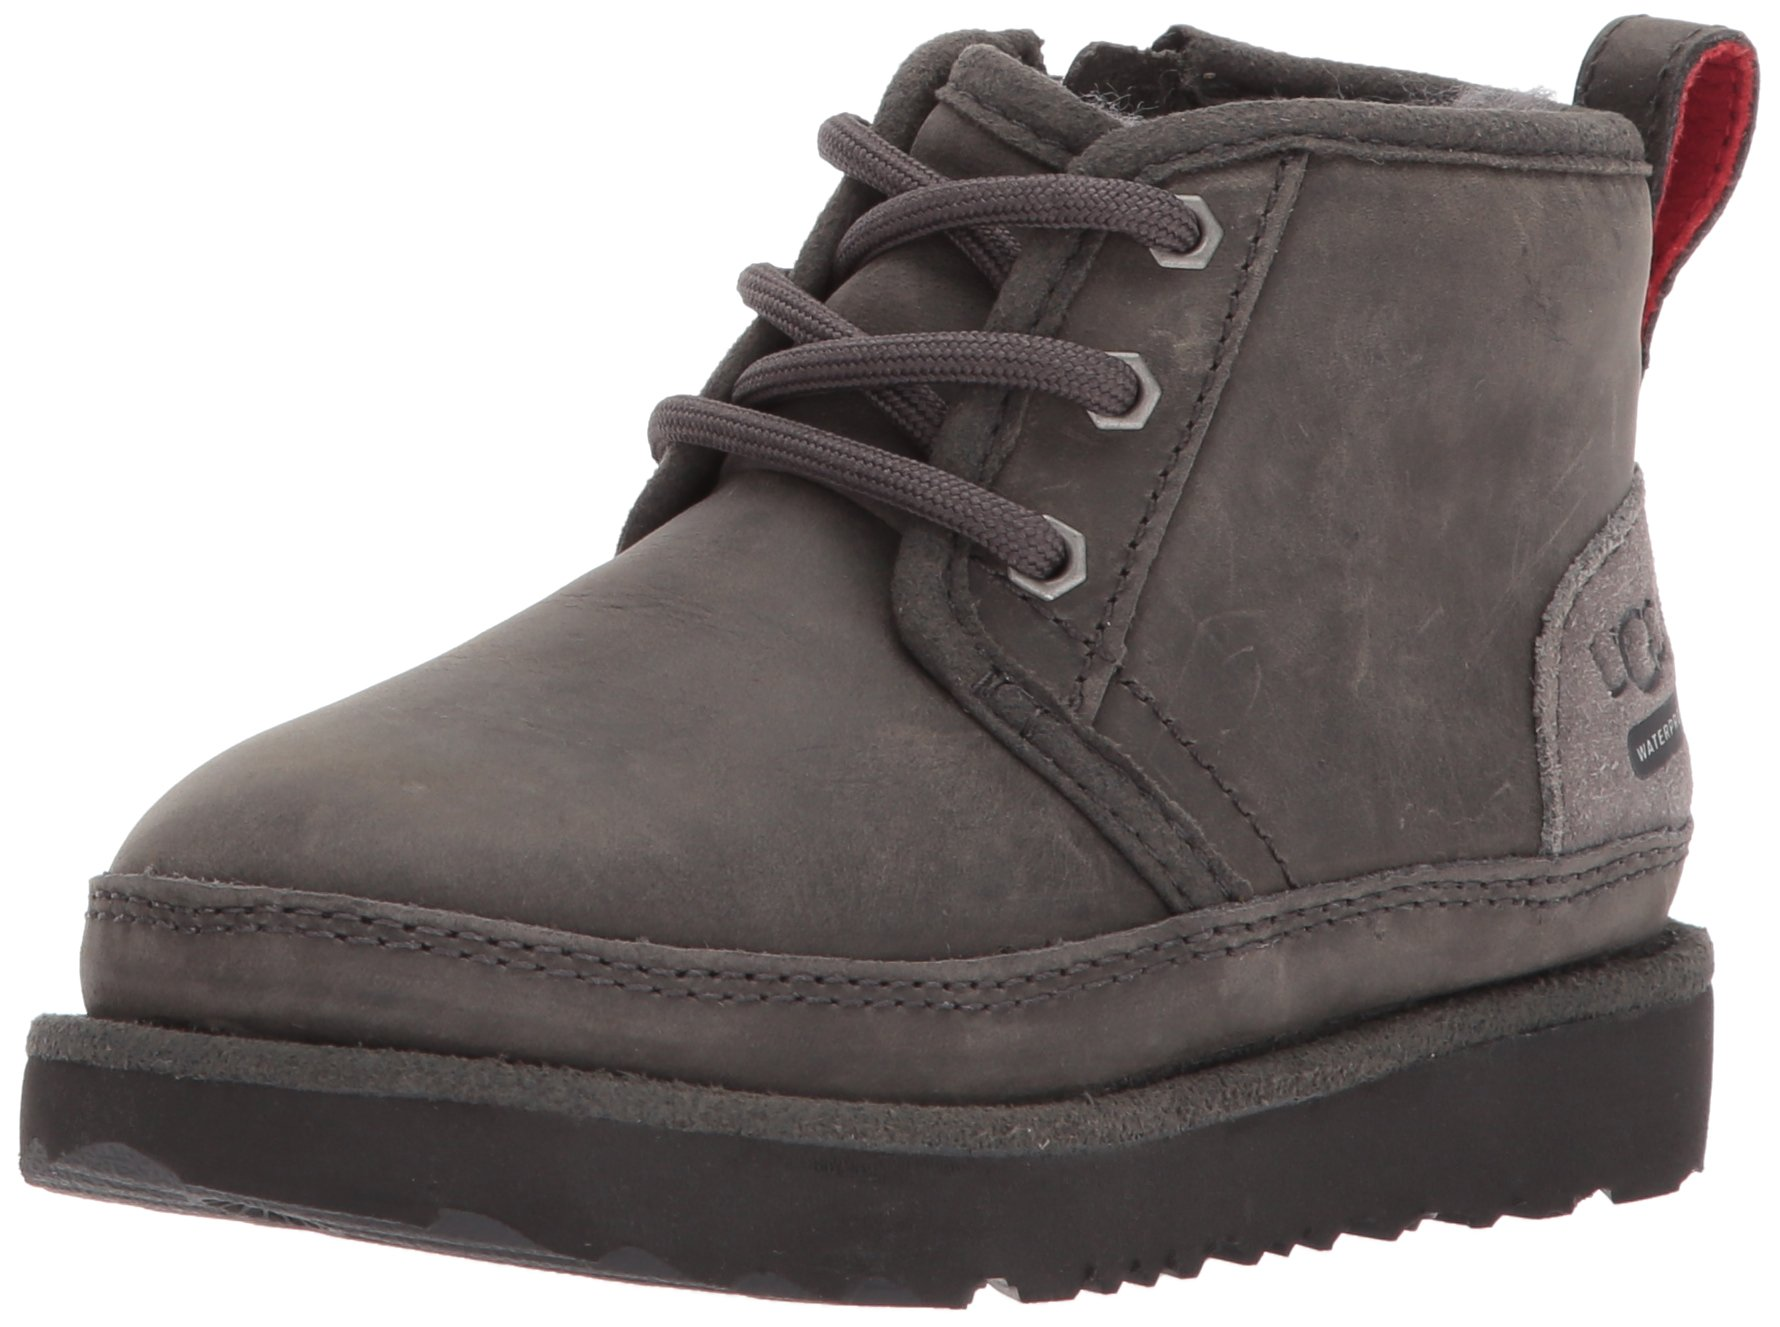 UGG Kids T Neumel II WP Pull-On Boot, Charcoal, 9 M US Toddler